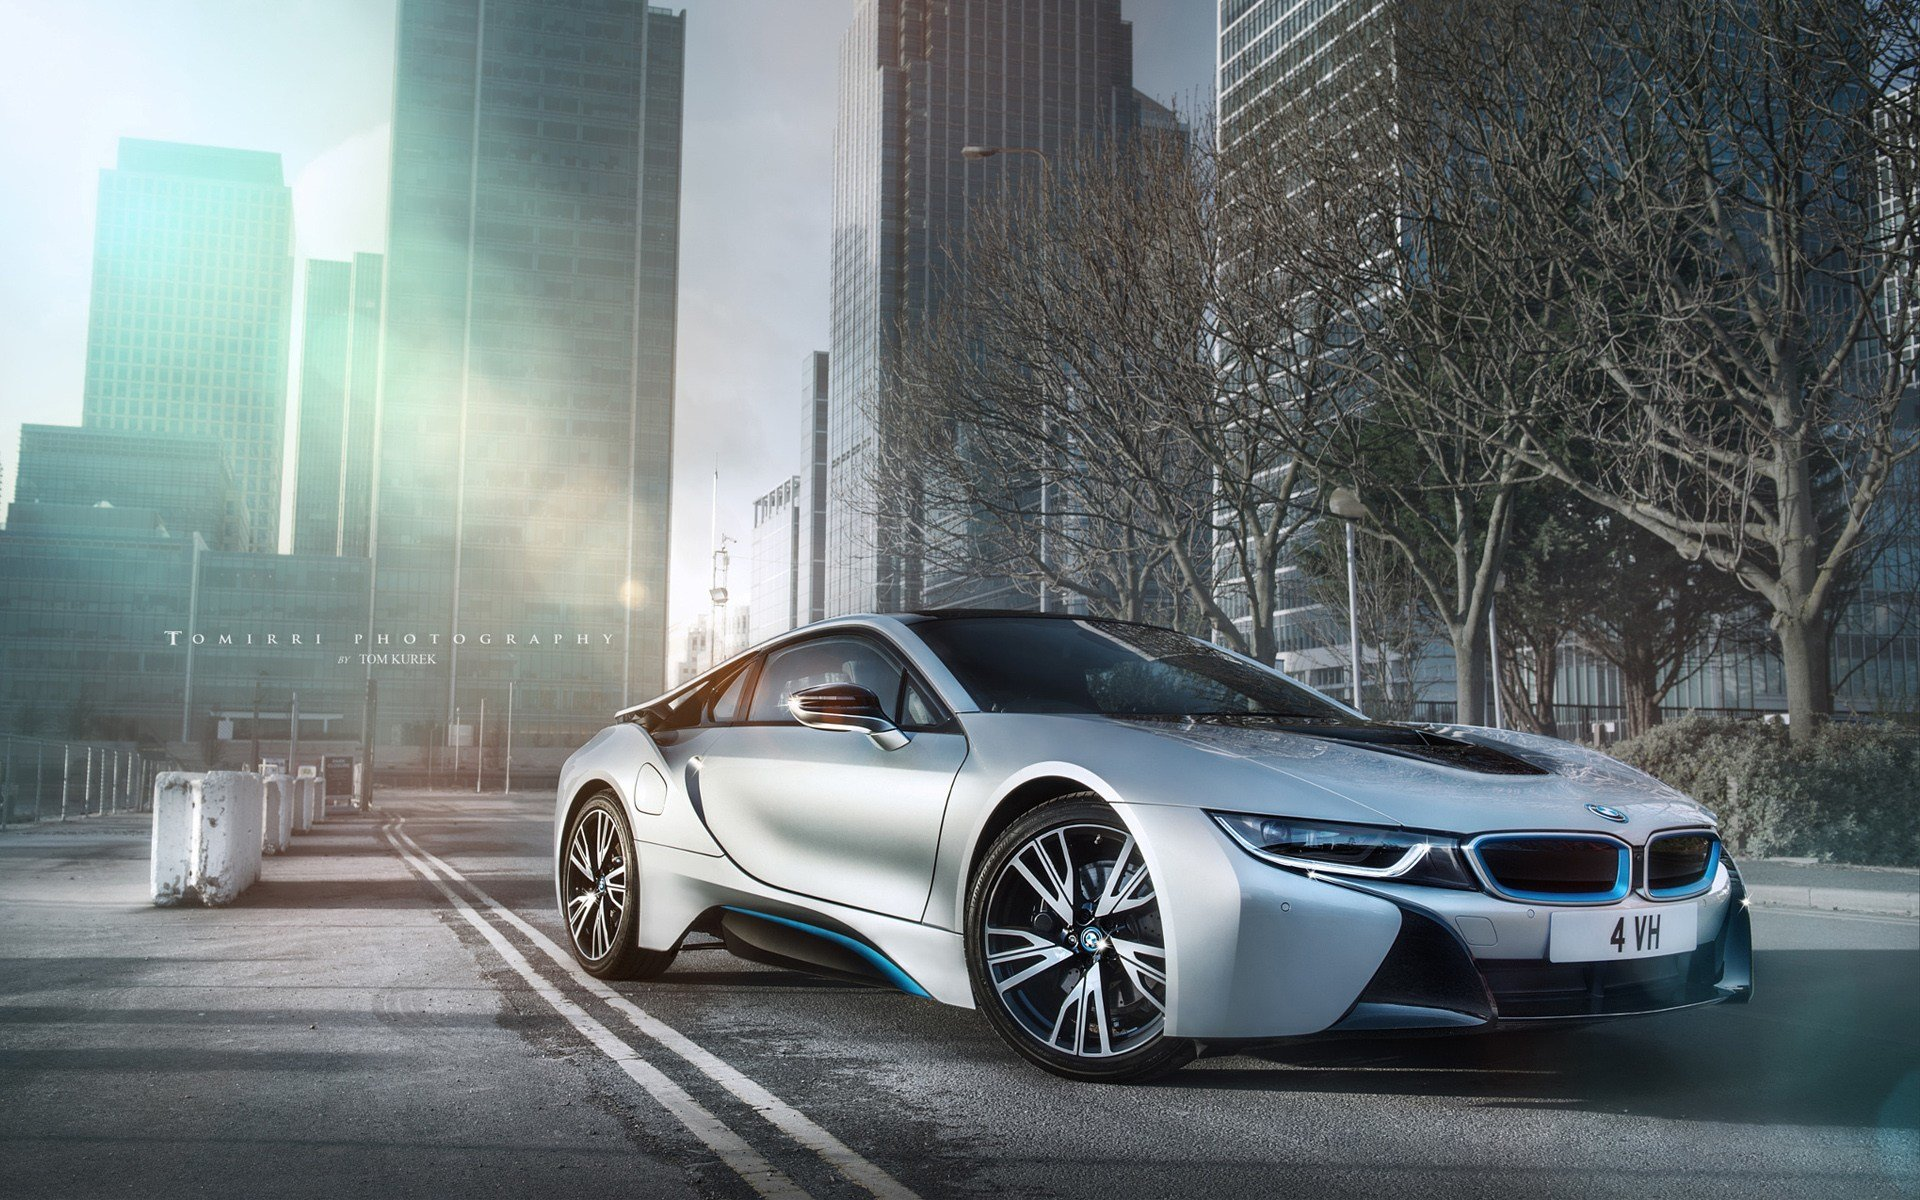 New Bmw I8 2016 Wallpaper Hd Car Wallpapers Id 6005 On This Month